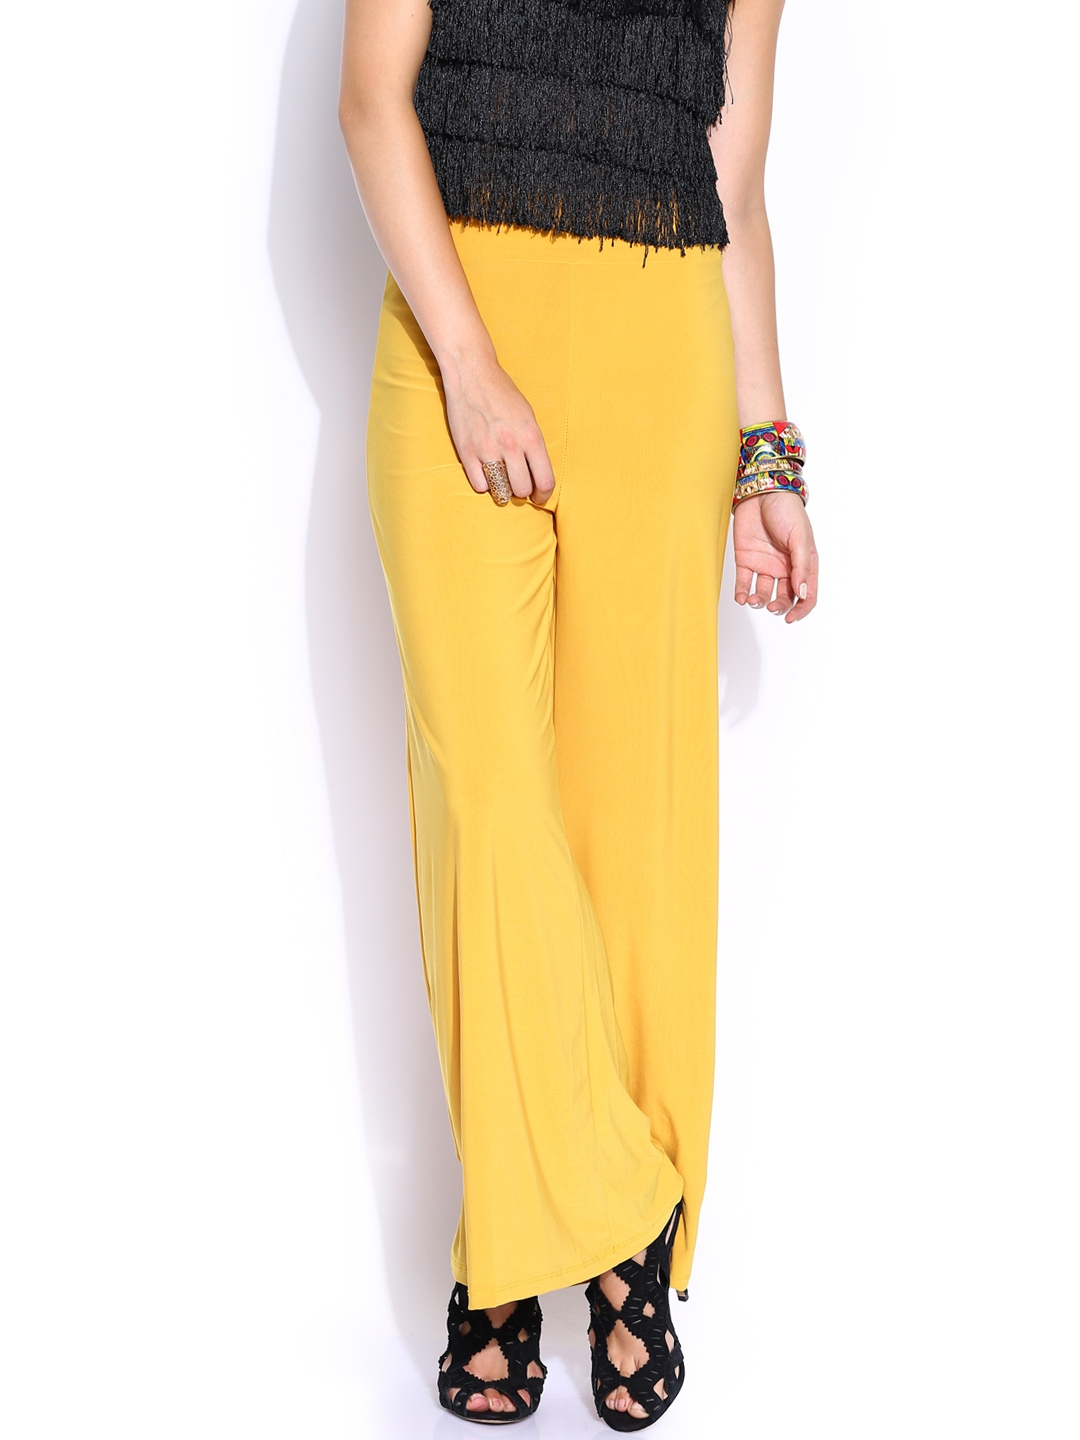 Model Women39s Fashion  Pants  Skinny Pants  Mustard Skinny Pants